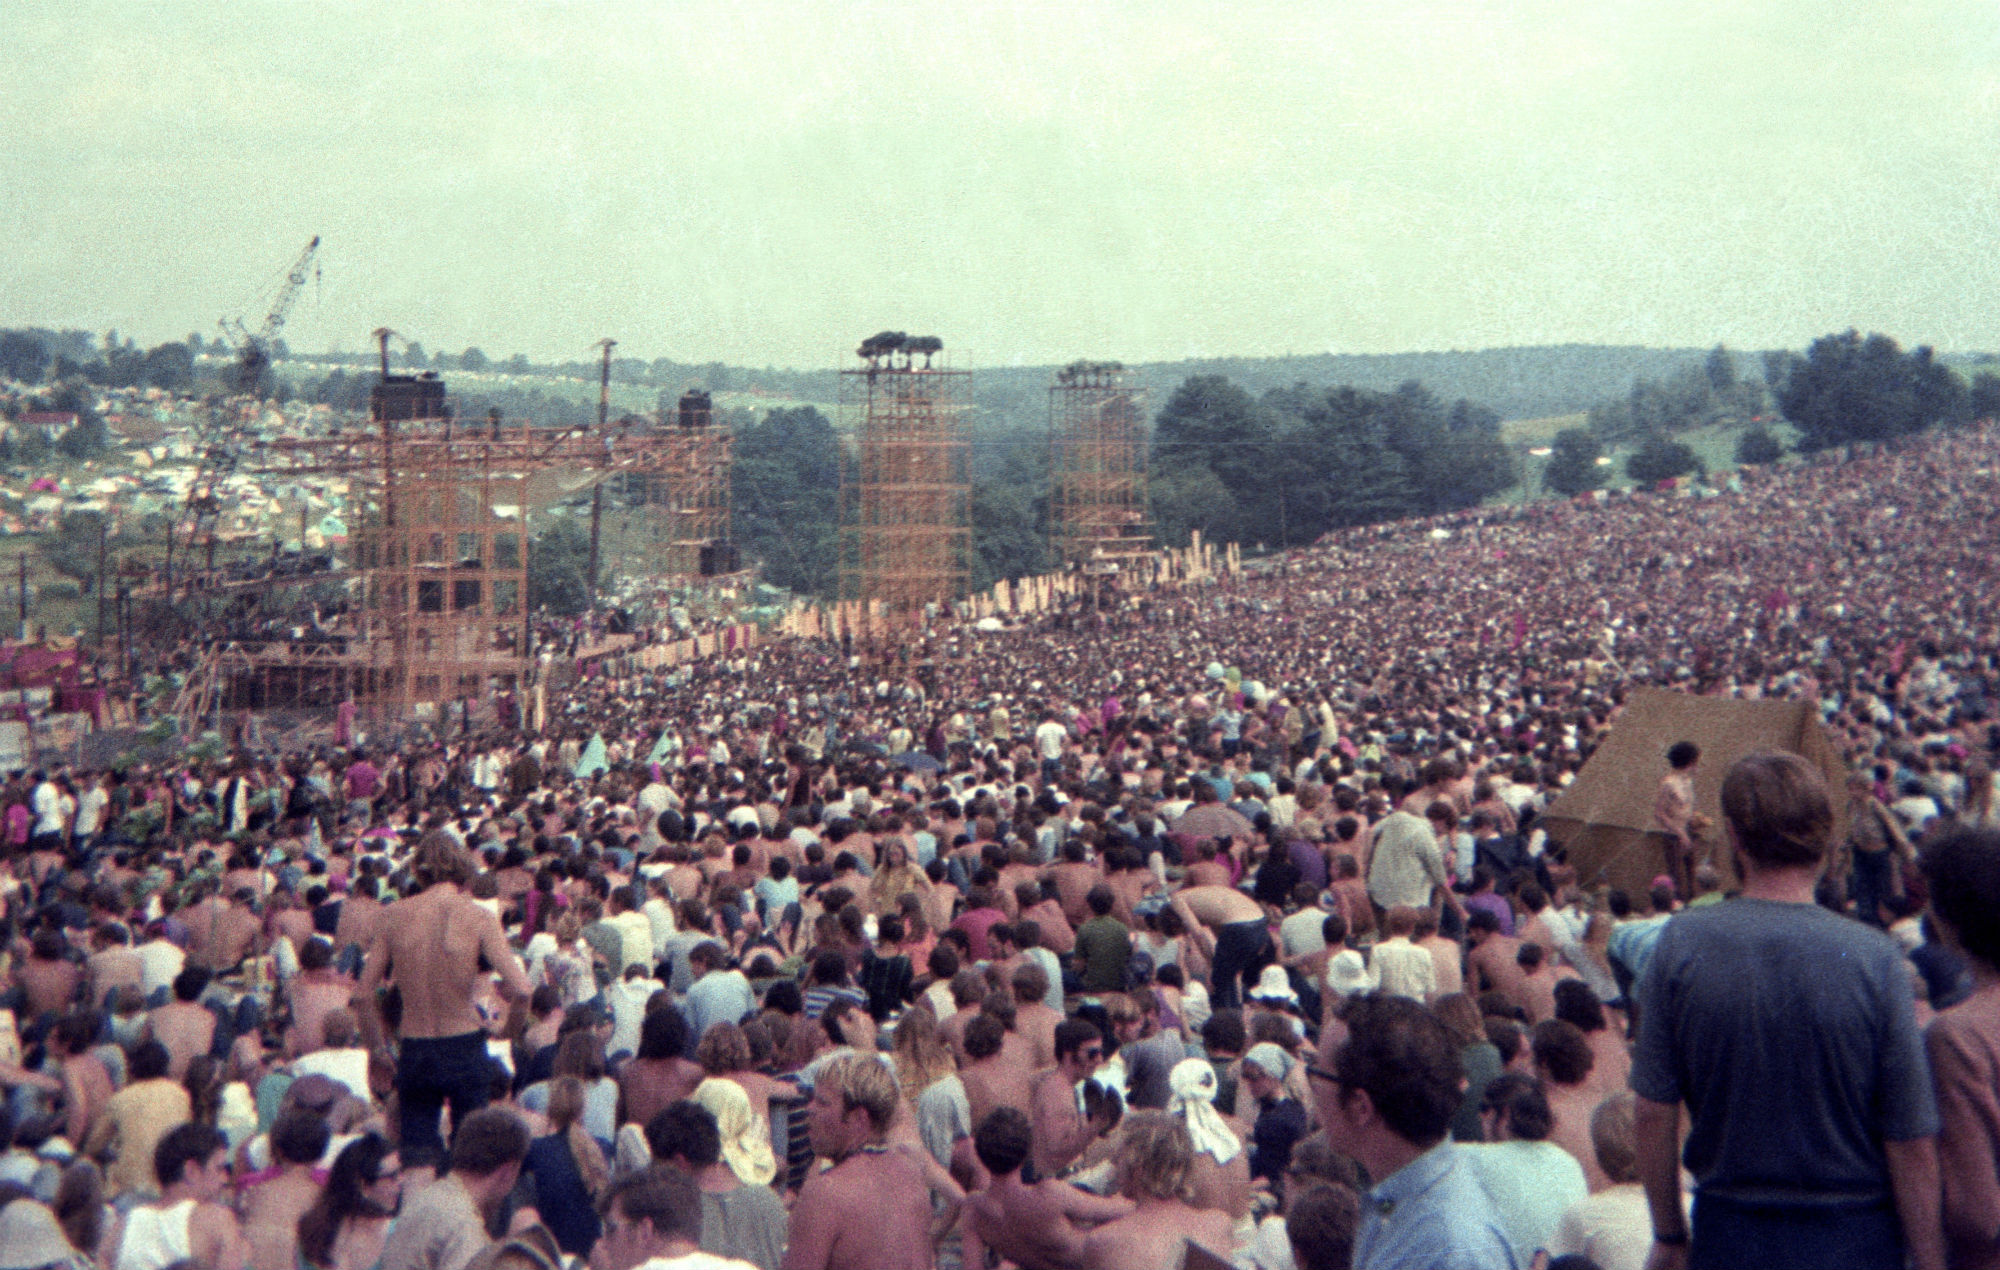 Woodstock, 1969. Credit: Getty